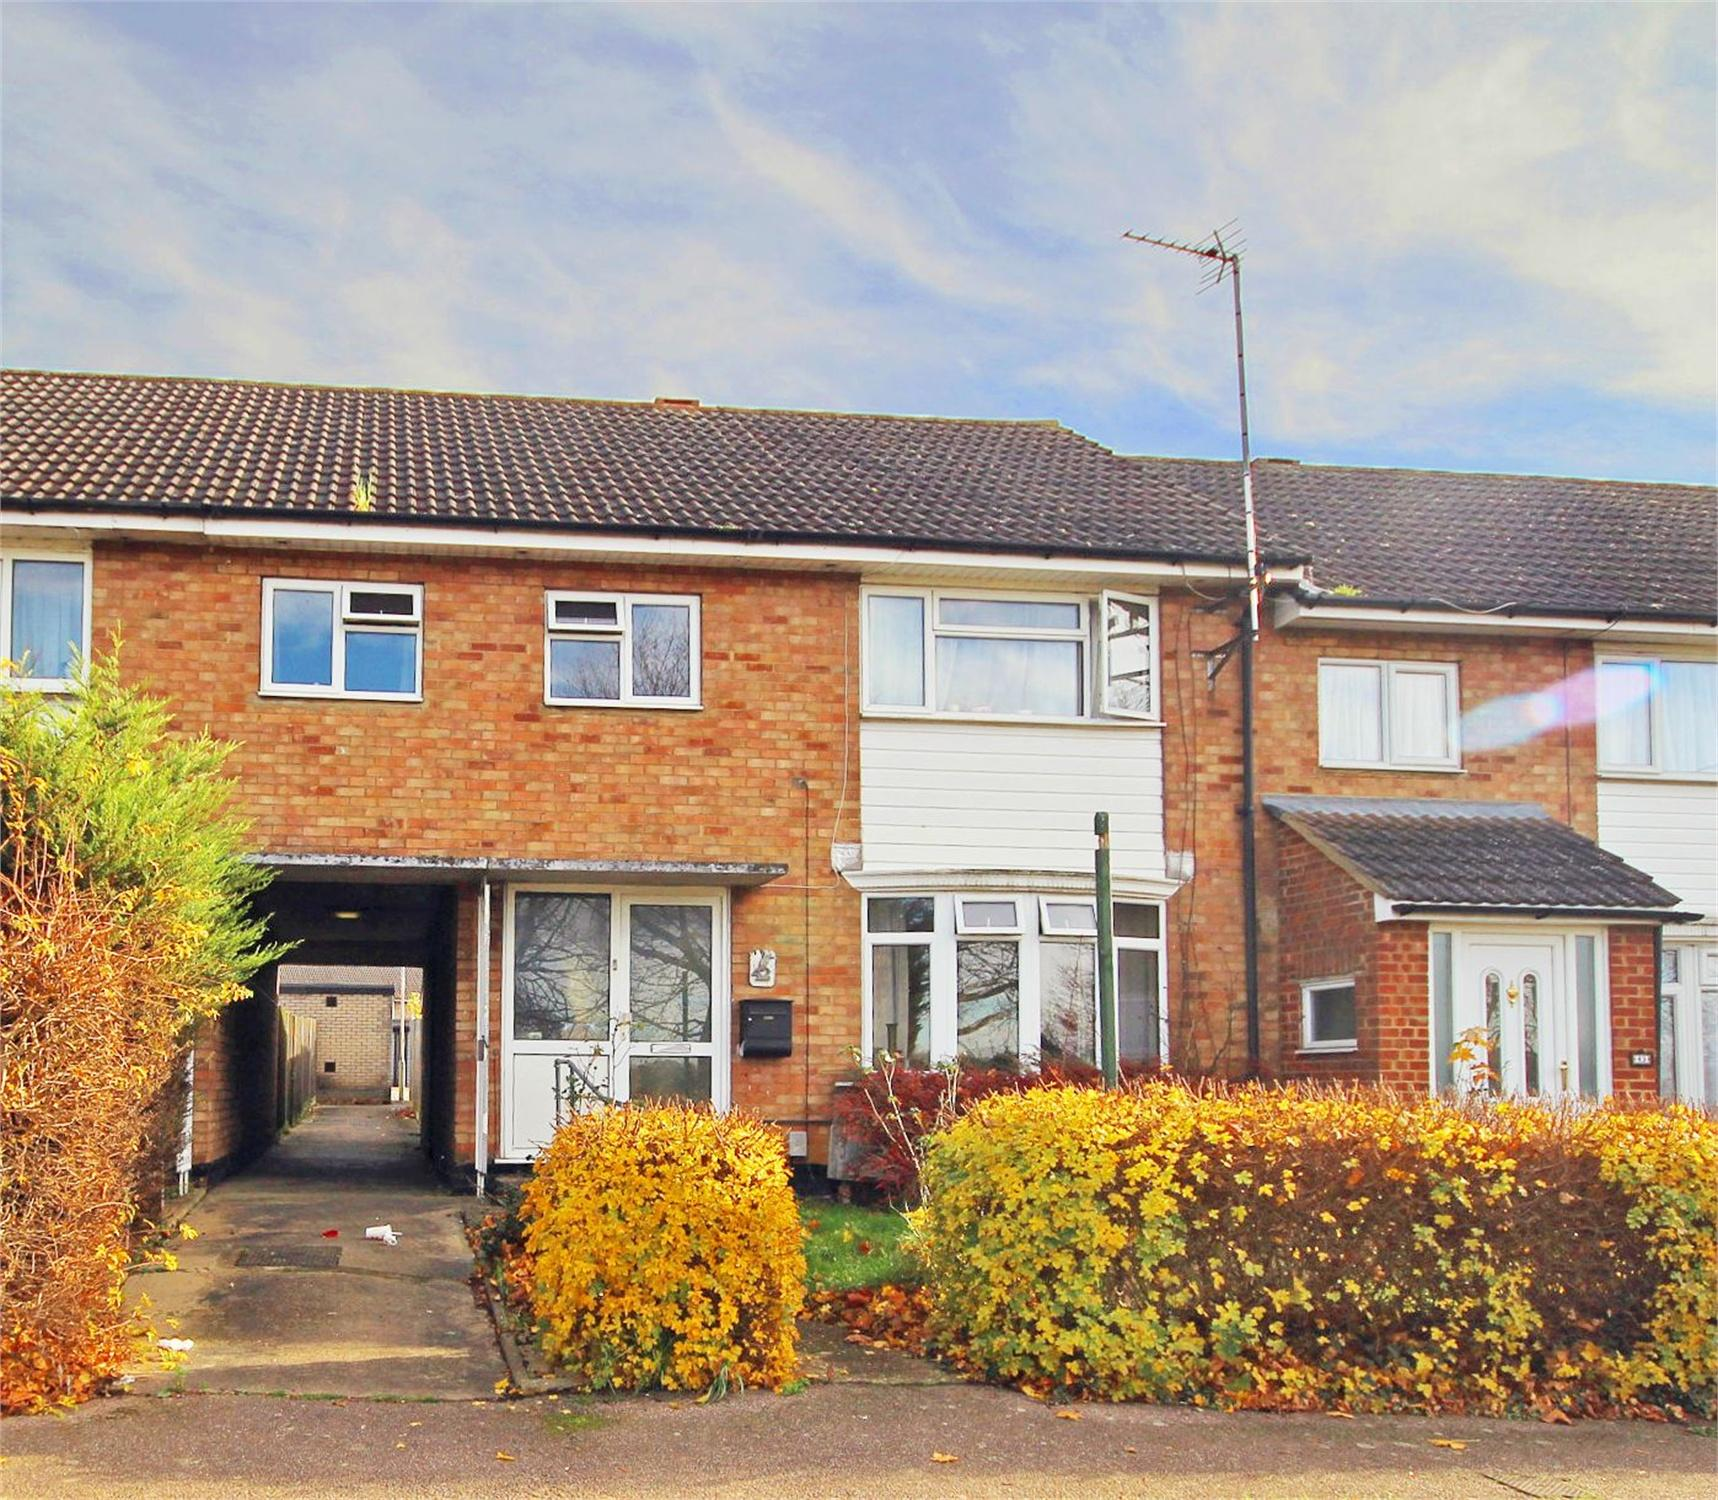 4 Bedroom House For Sale In Letchworth